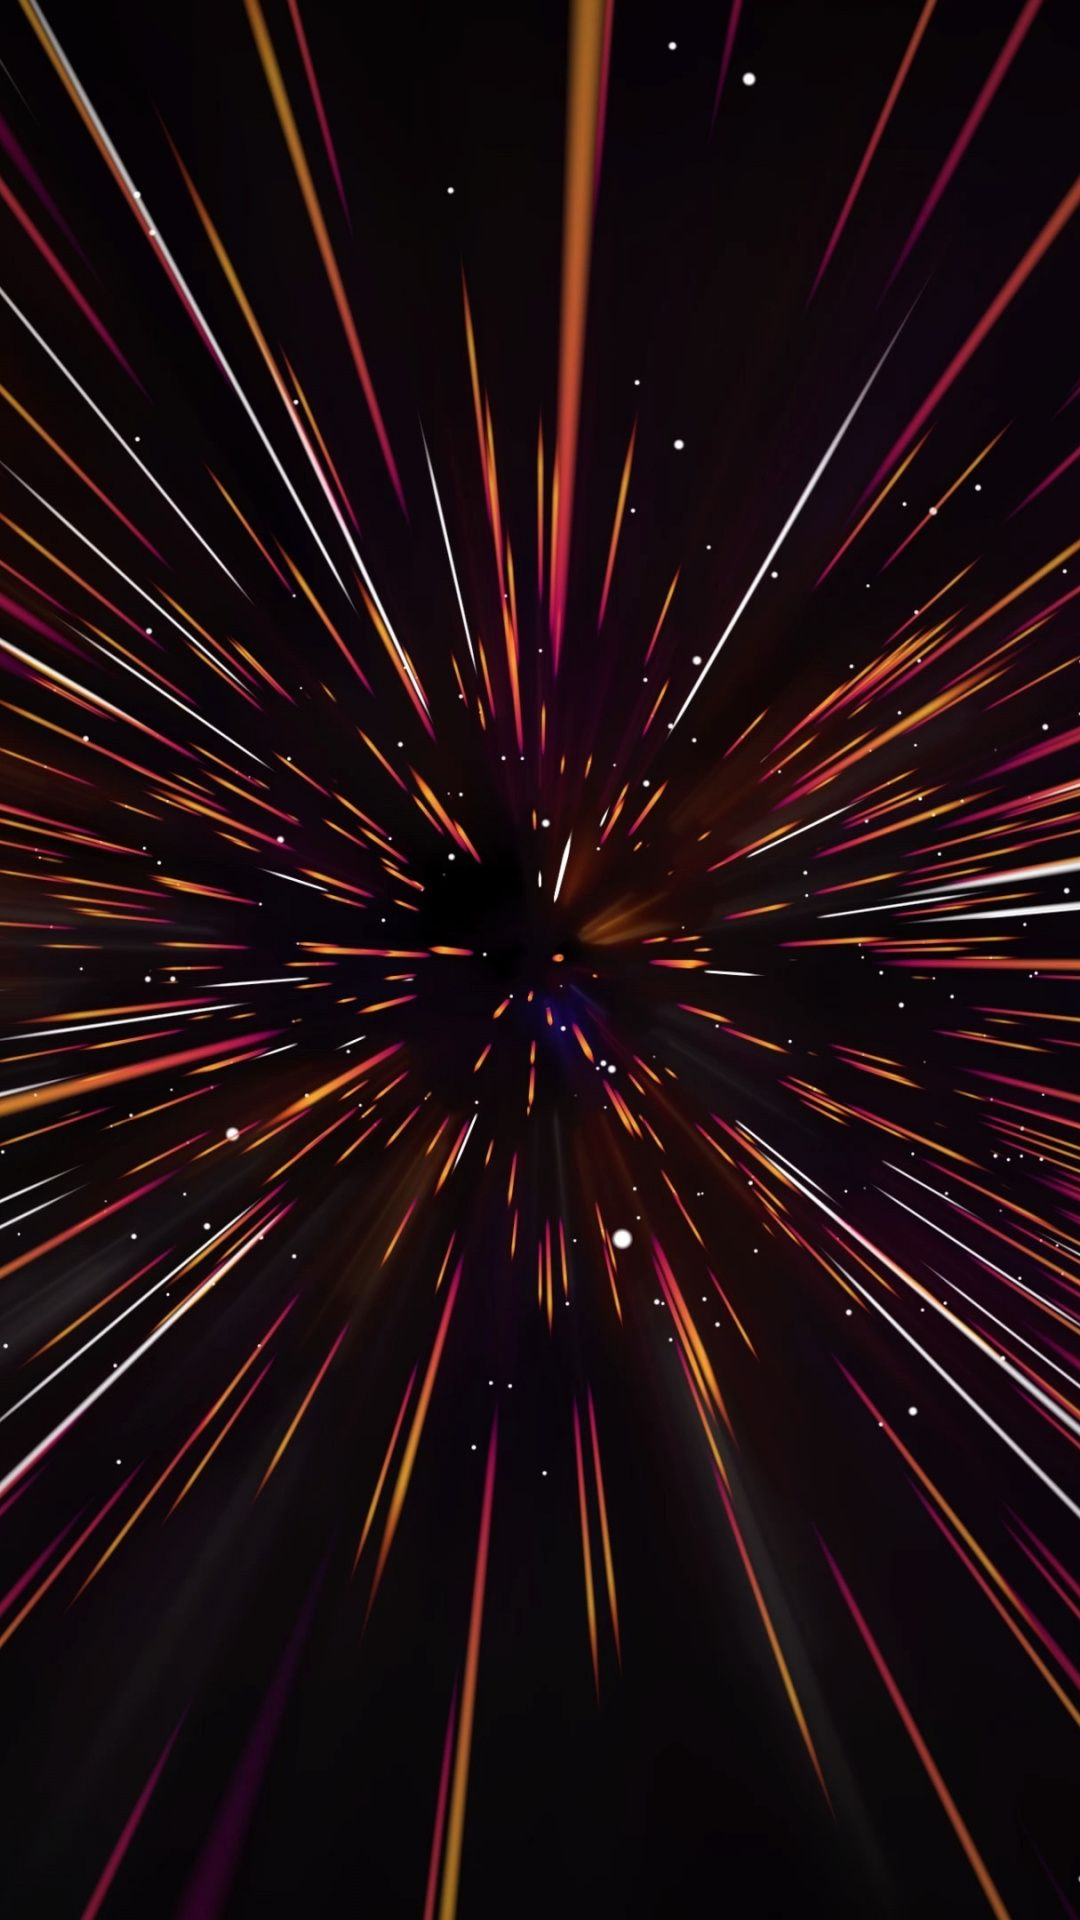 Laser Particles Lines Abstract 1080x1920 Wallpaper Vaporwave Wallpaper Abstract Wallpaper Abstract